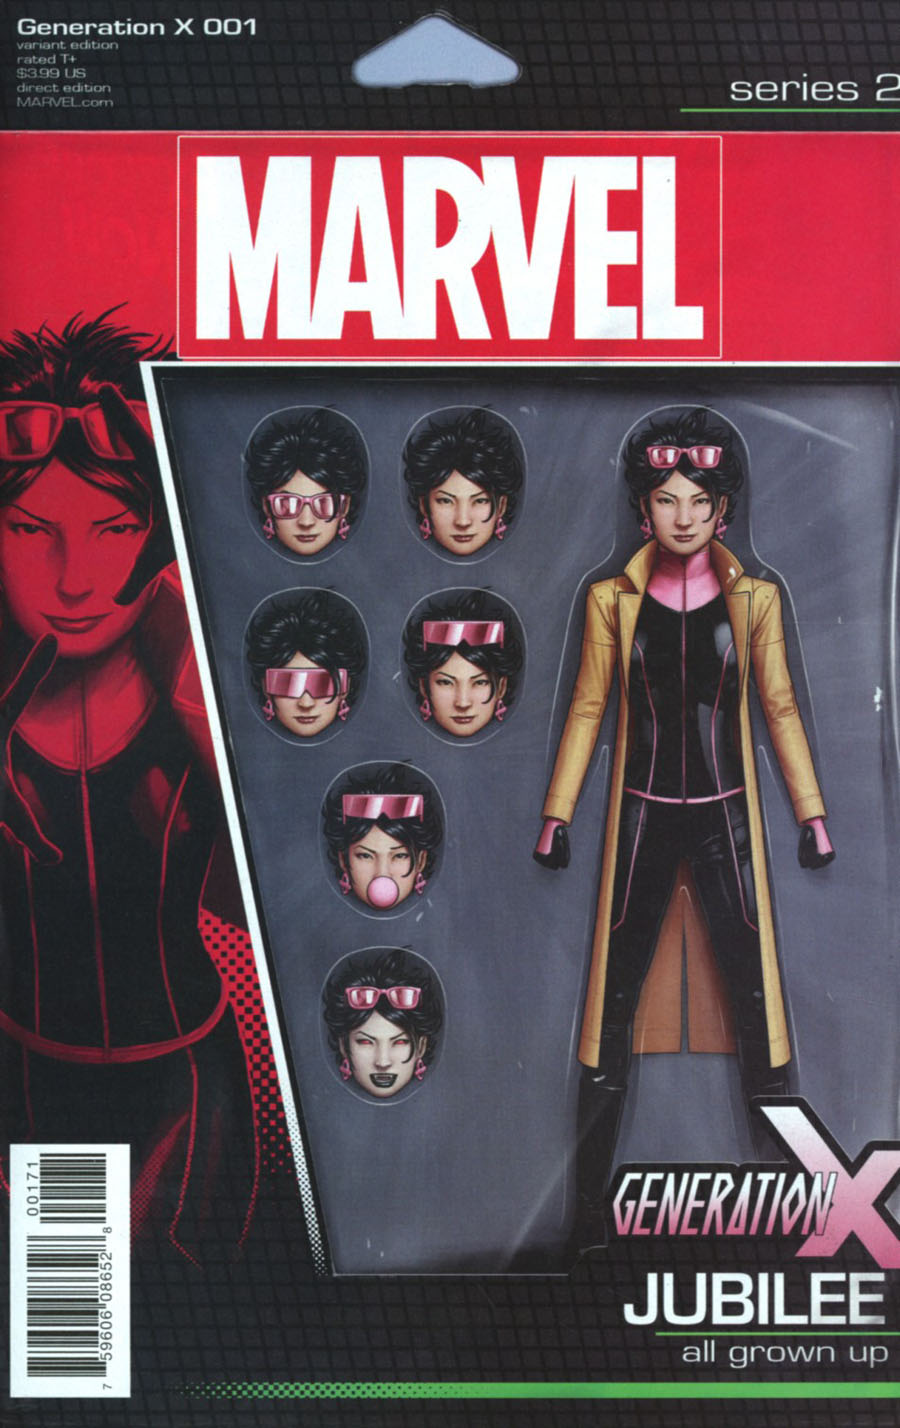 Generation X Vol 2 #1 Cover C Variant John Tyler Christopher Action Figure Cover (Resurrxion Tie-In)